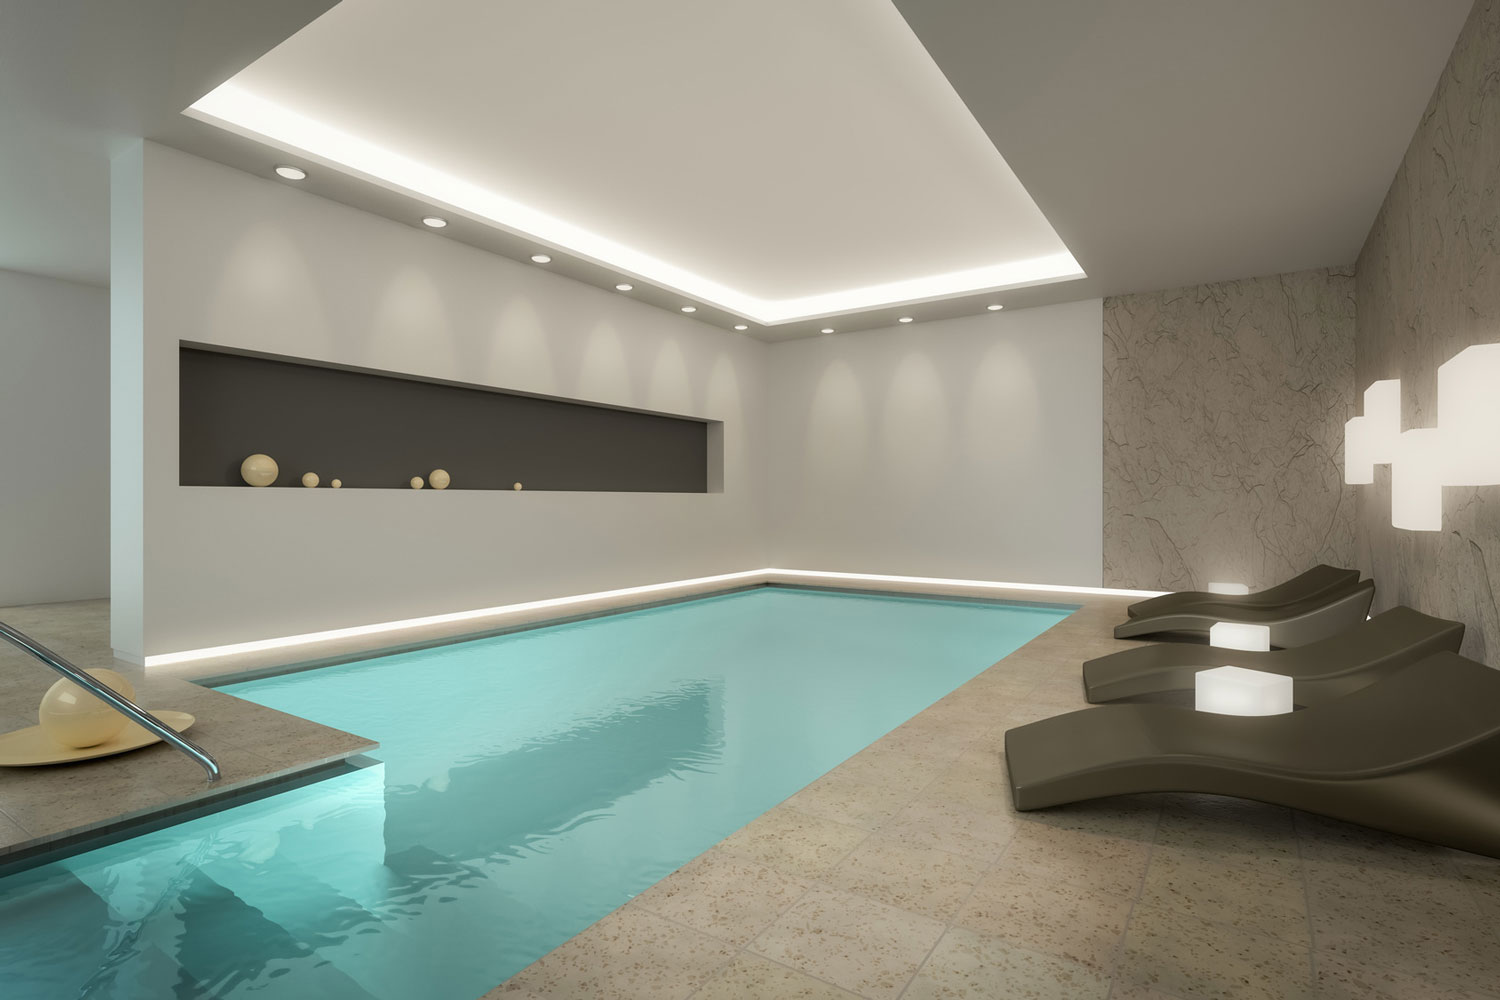 Construction of swimming pools Indoor